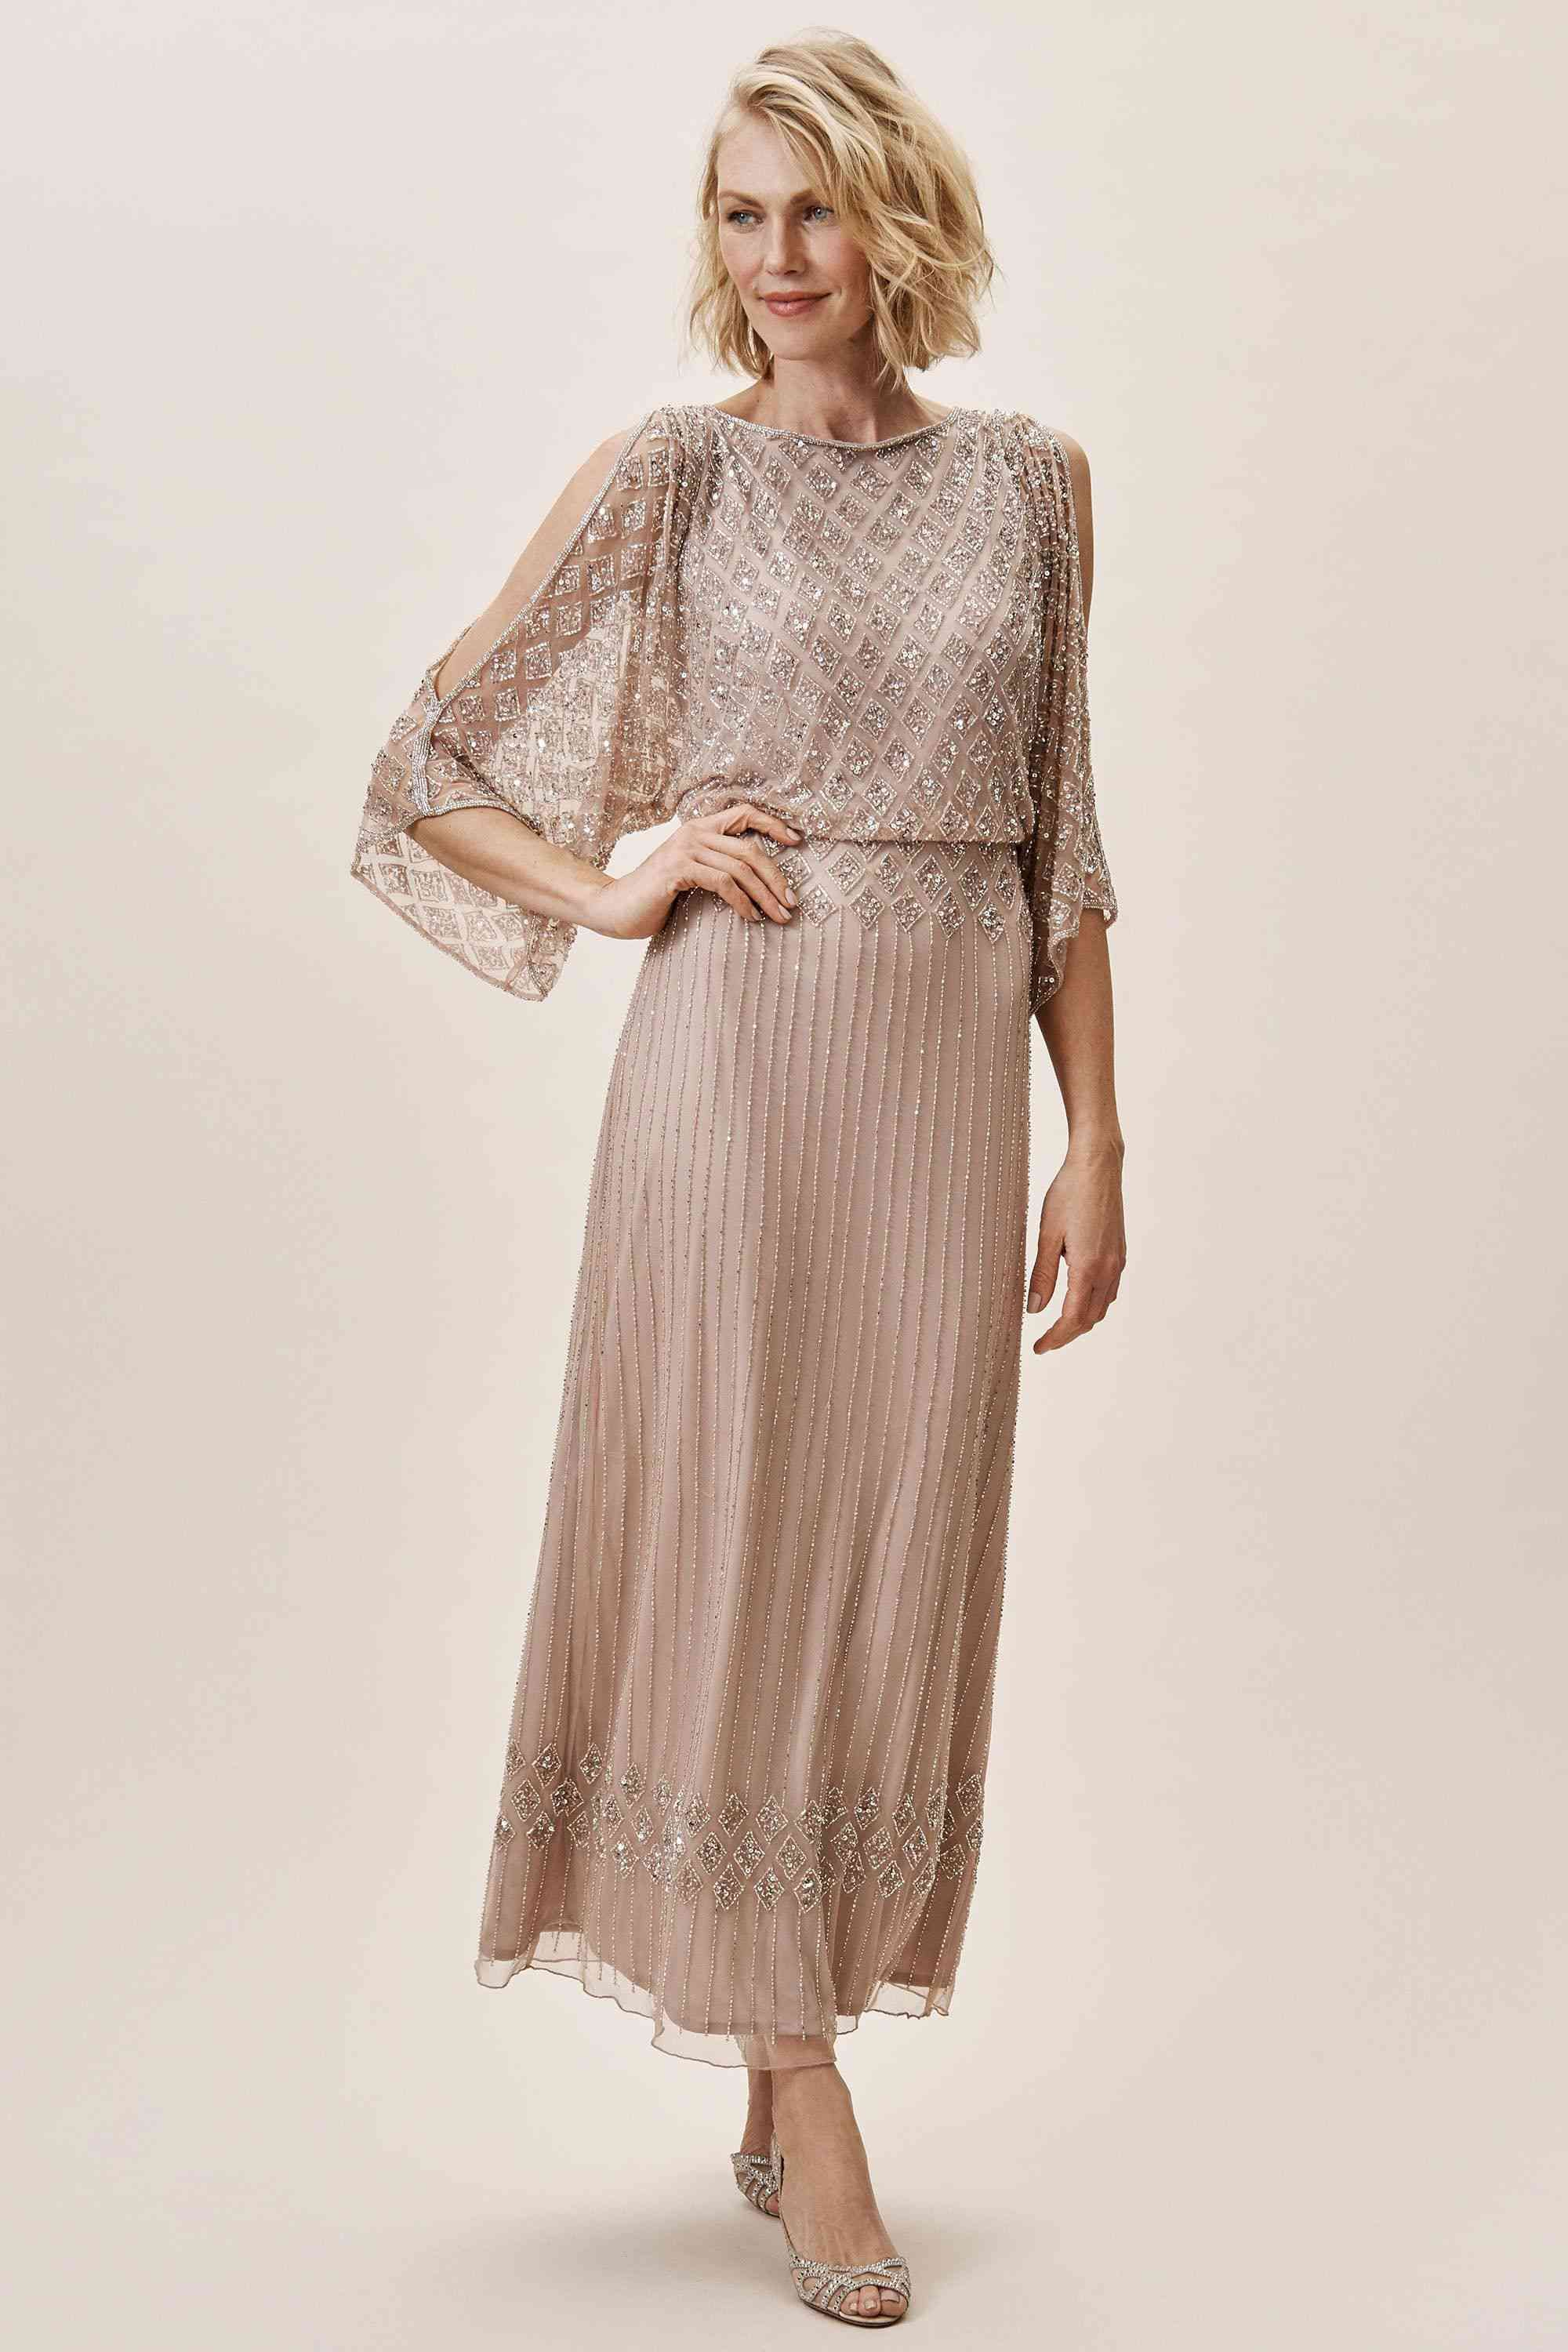 30 Chic Mother of the Groom Dresses for Any Style and Budget